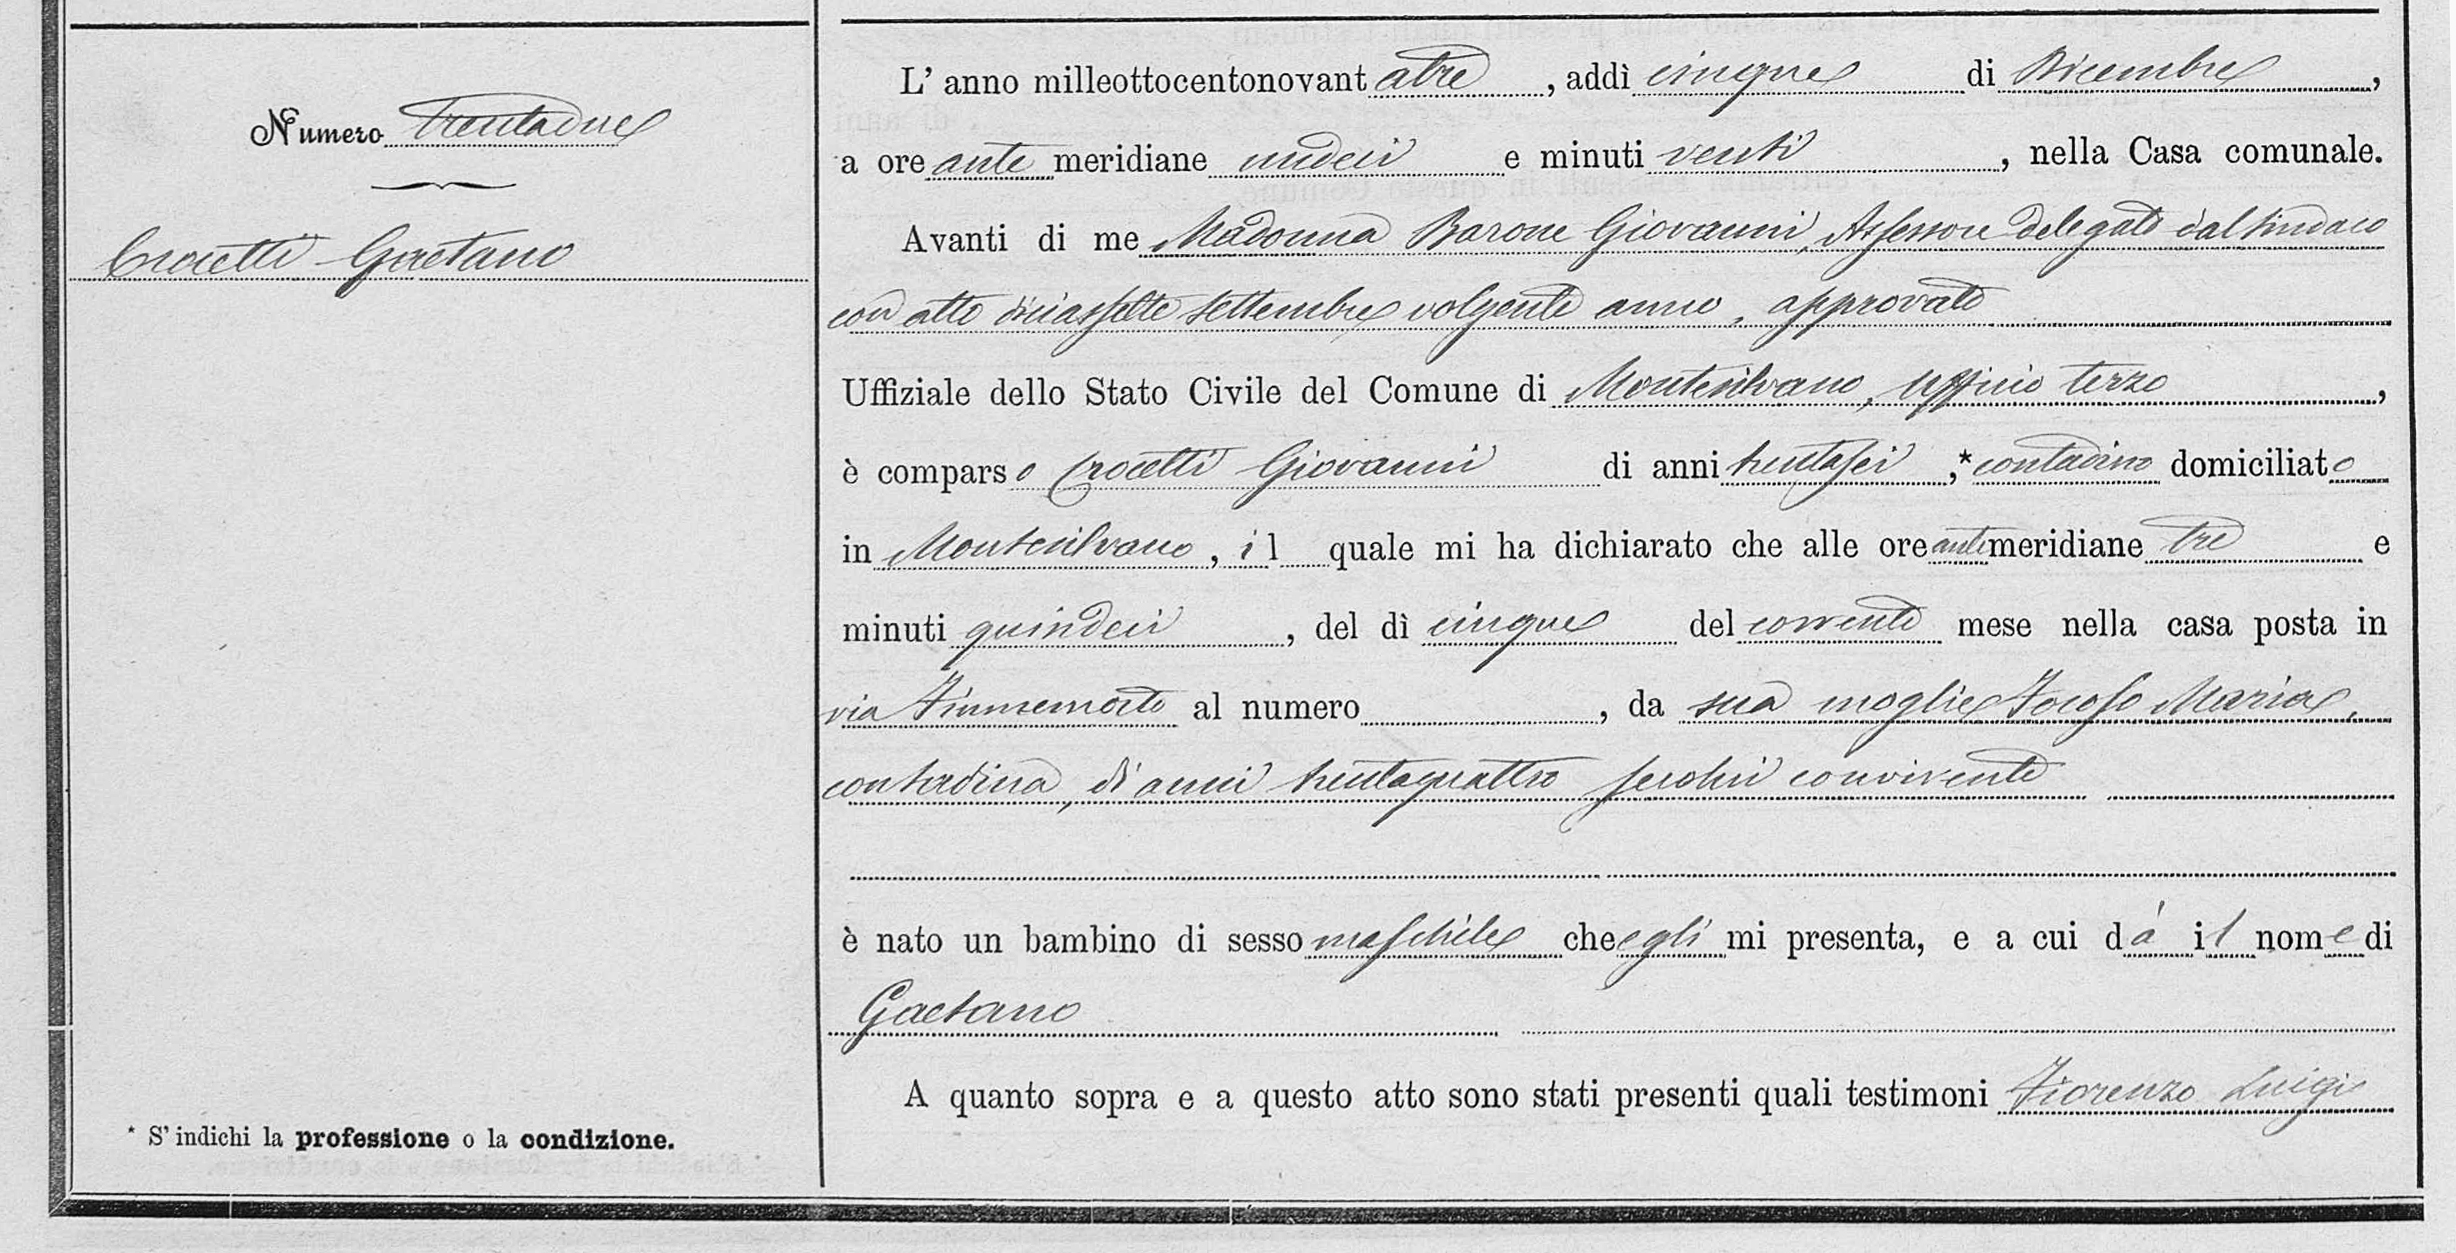 http://www.genealogiafamiliare.it/wp/wp-content/uploads/2018/03/Birth_act1.jpg